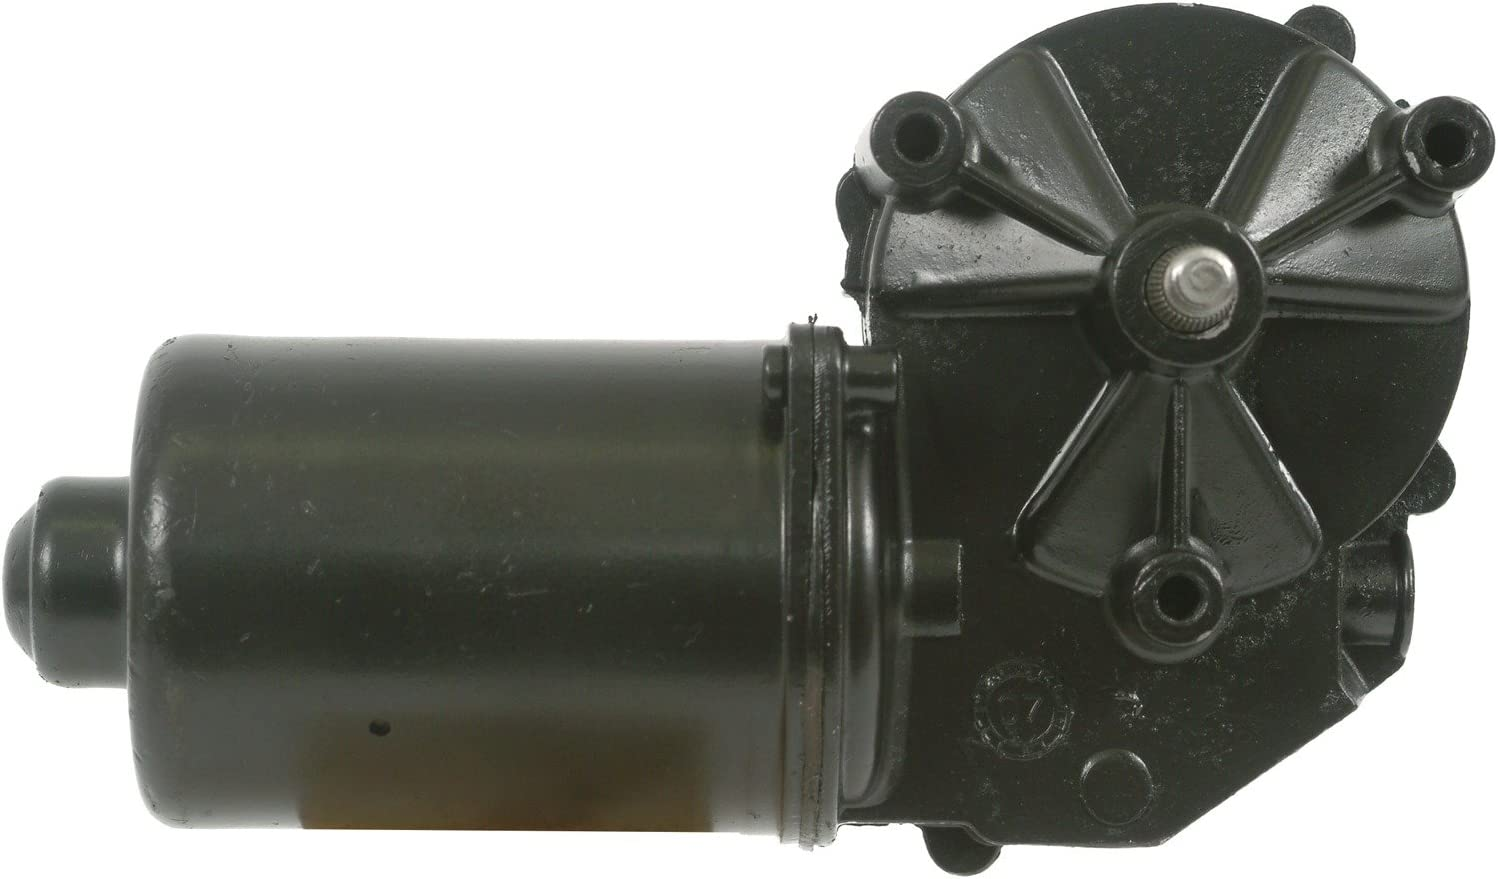 Cardone 40-10020 Remanufactured Domestic Wiper Motor 71ClnRdduzLSL1500_